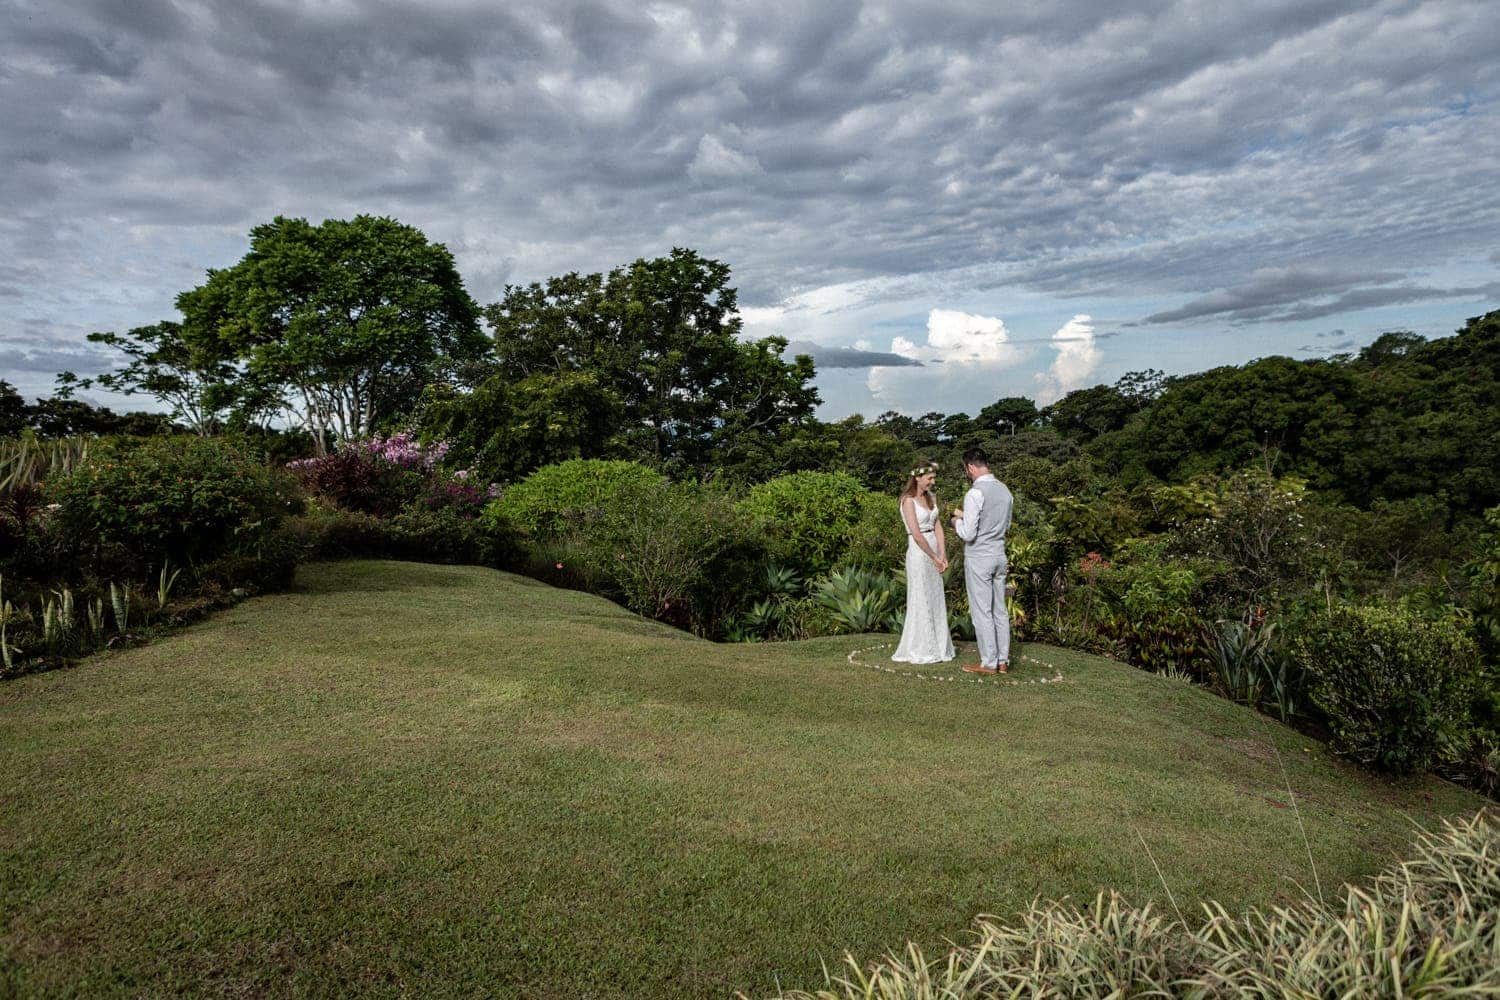 Wide angle photo of couple getting married in tropical garden.